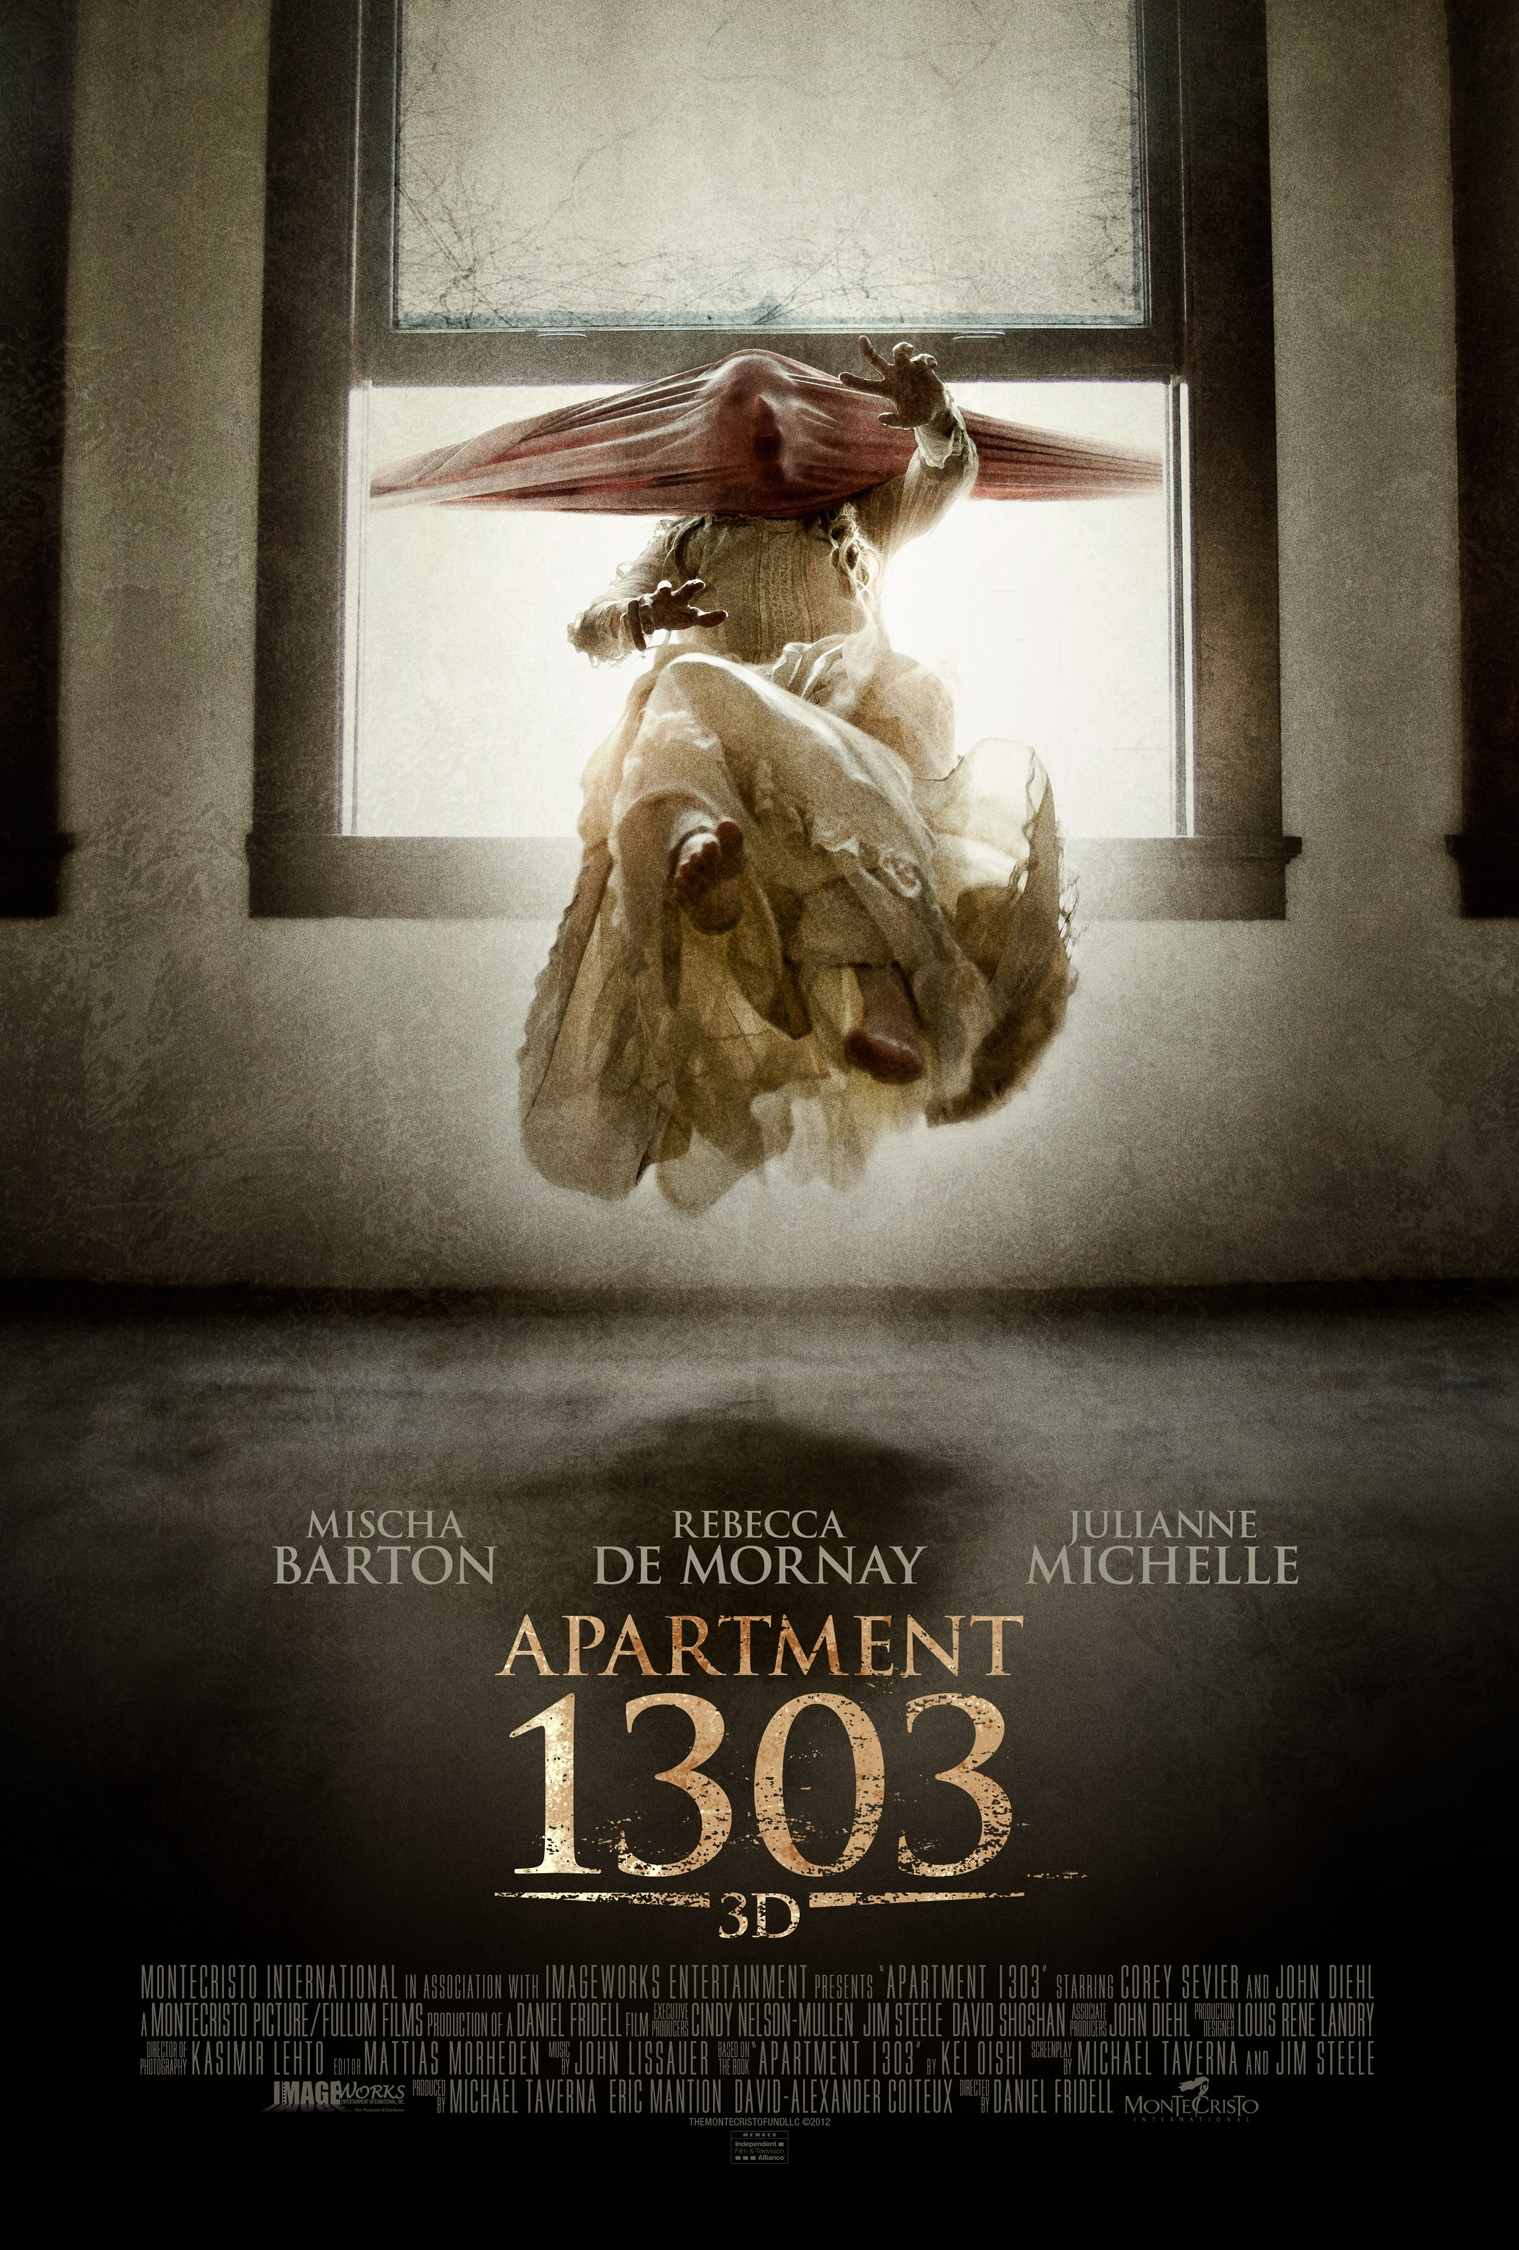 New Poster For Apartment 1303 3D Jump Into Scares with New Trailer and Poster For Apartment 1303 3D